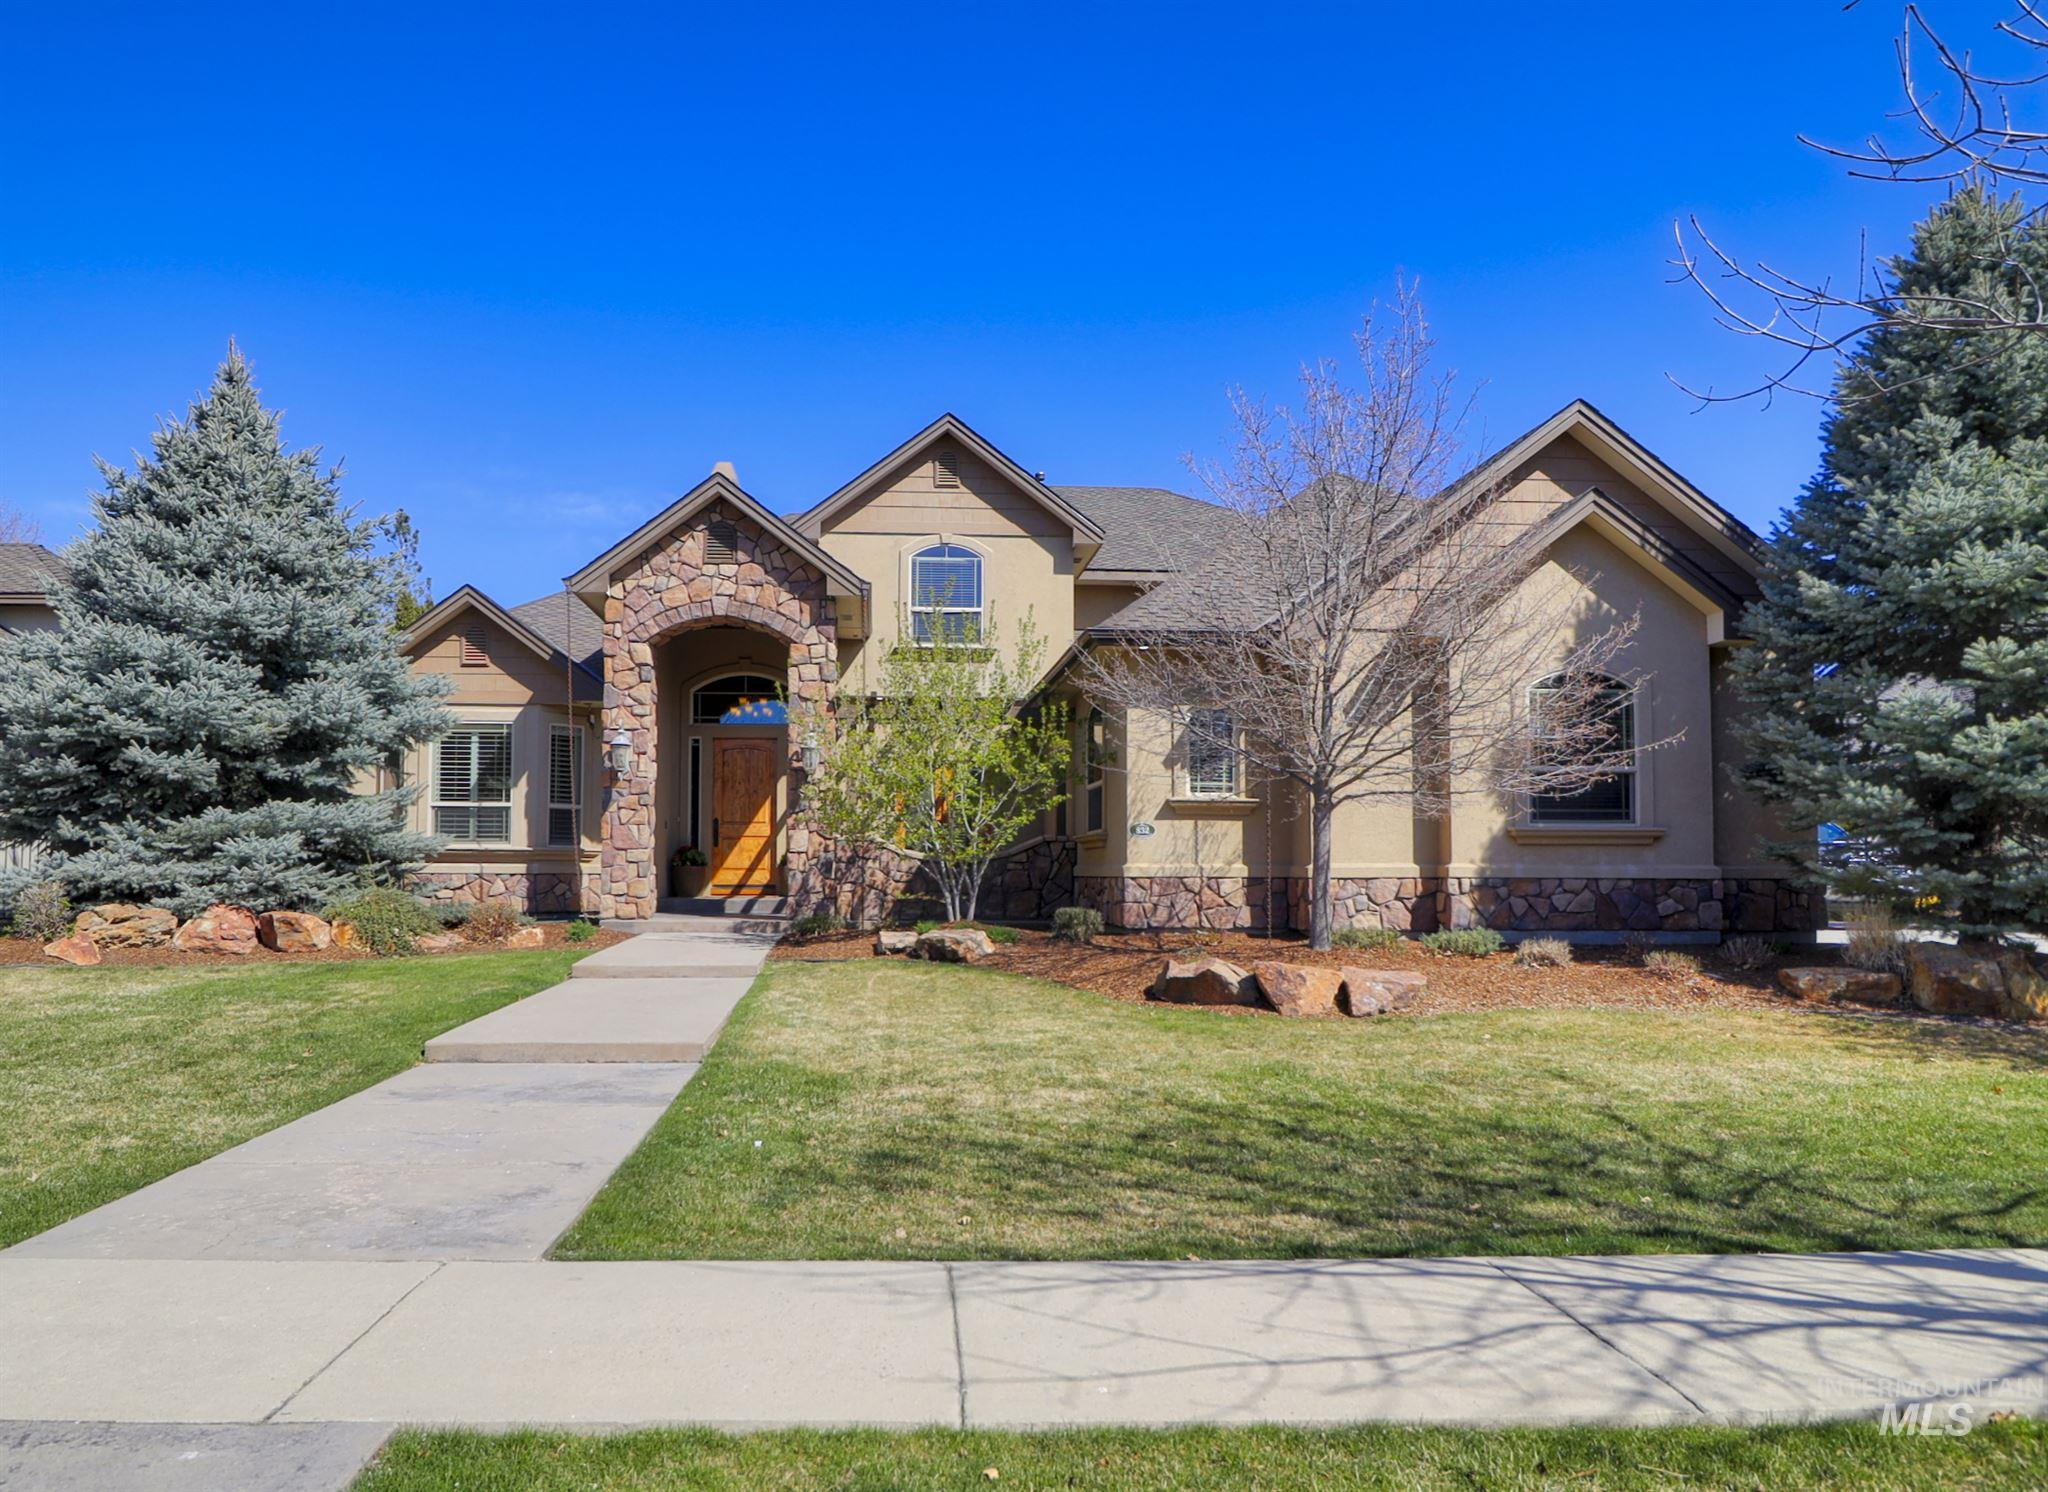 832 W Headwaters Property Photo - Eagle, ID real estate listing